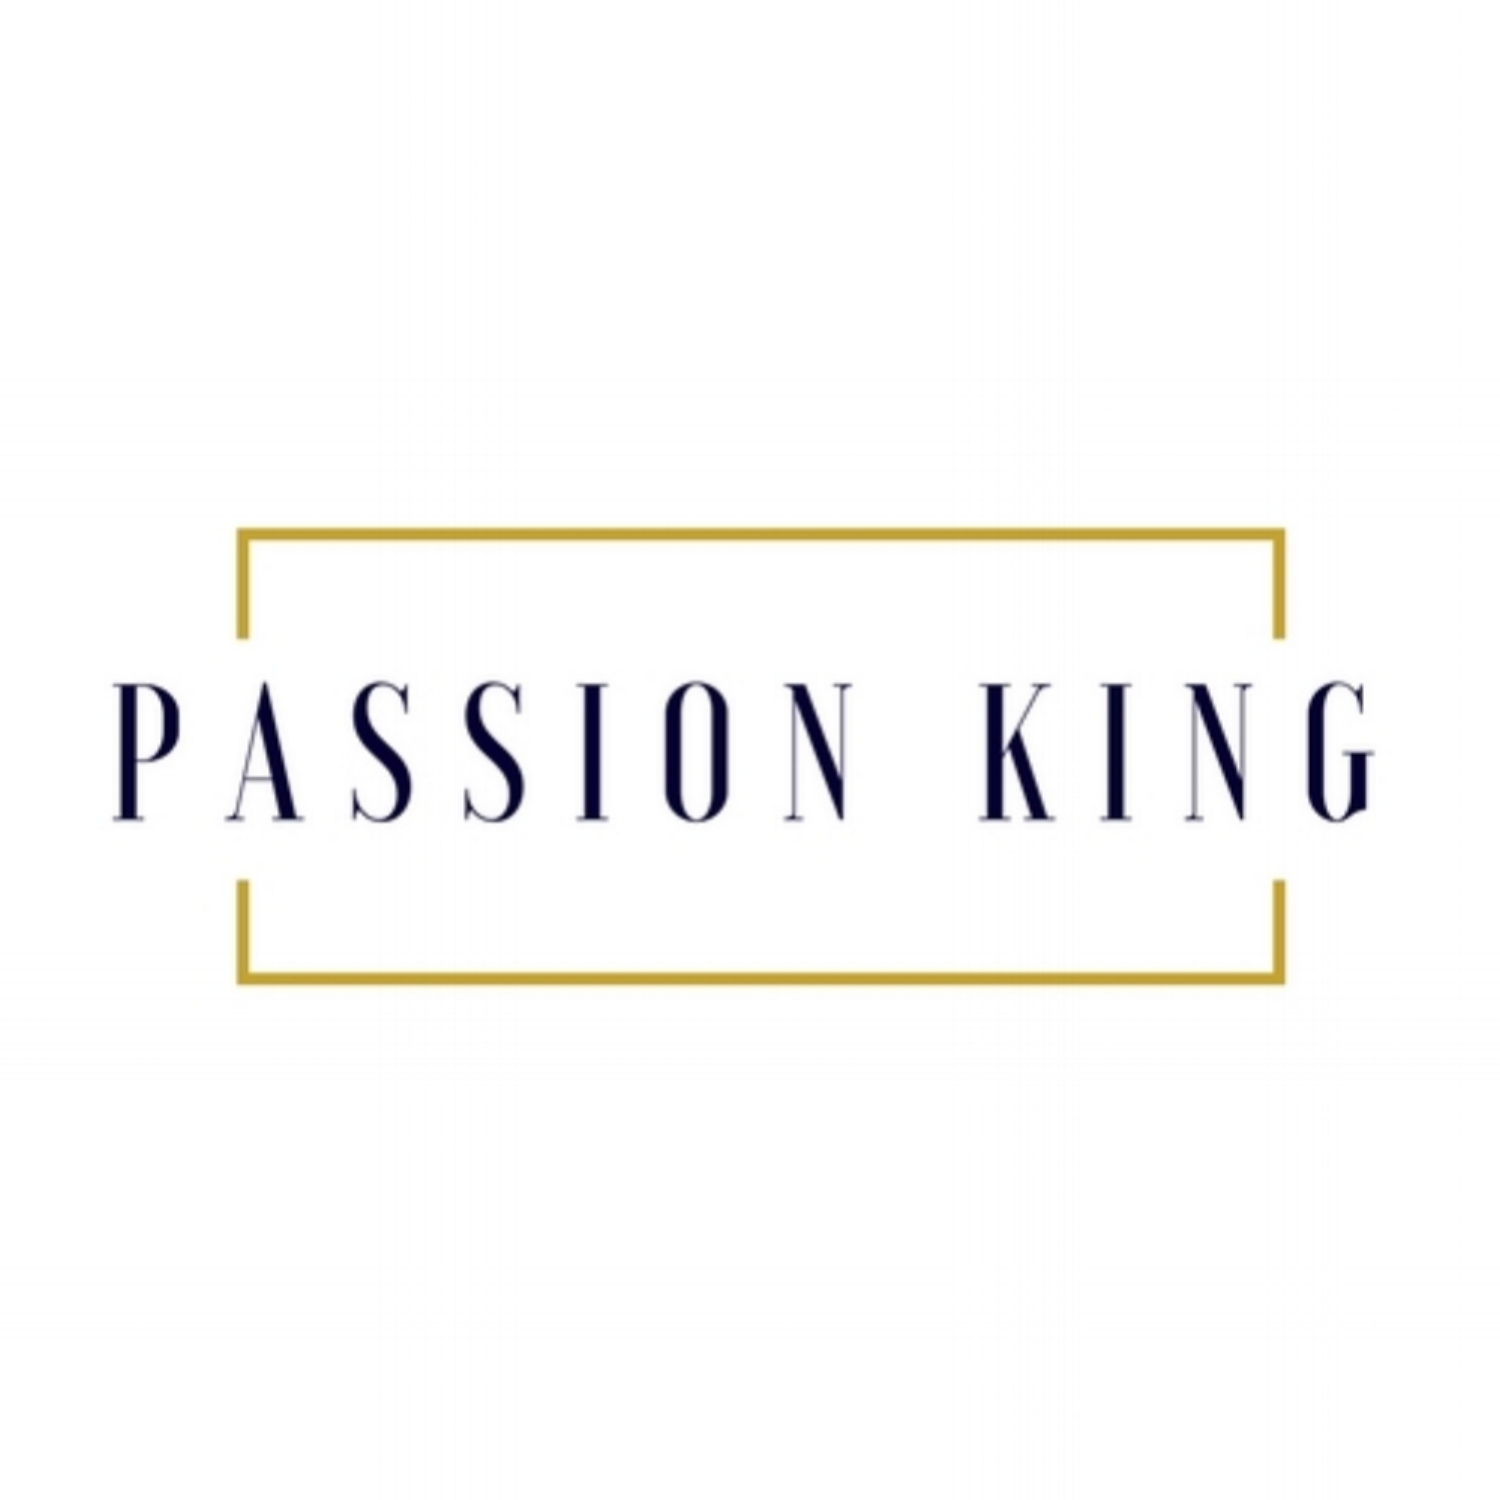 PASSION KING